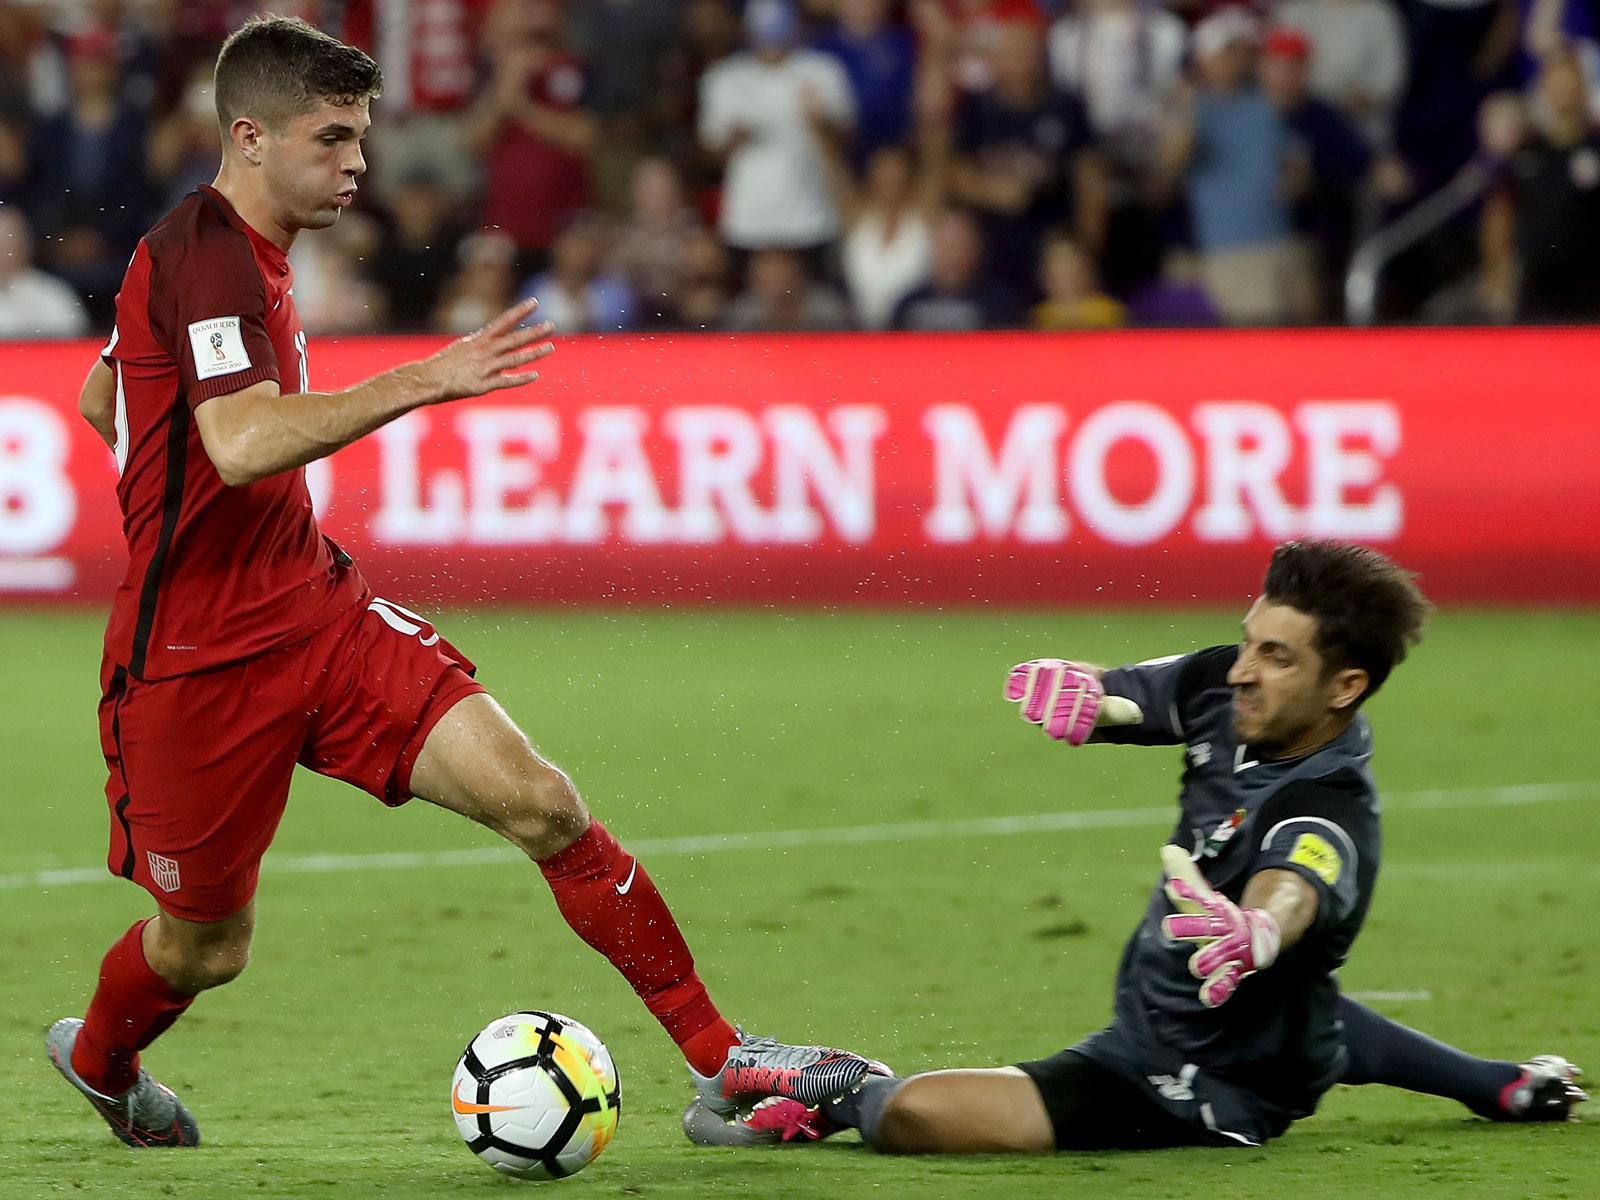 Christian Pulisic has emerged as the USA's best player despite being a teenager